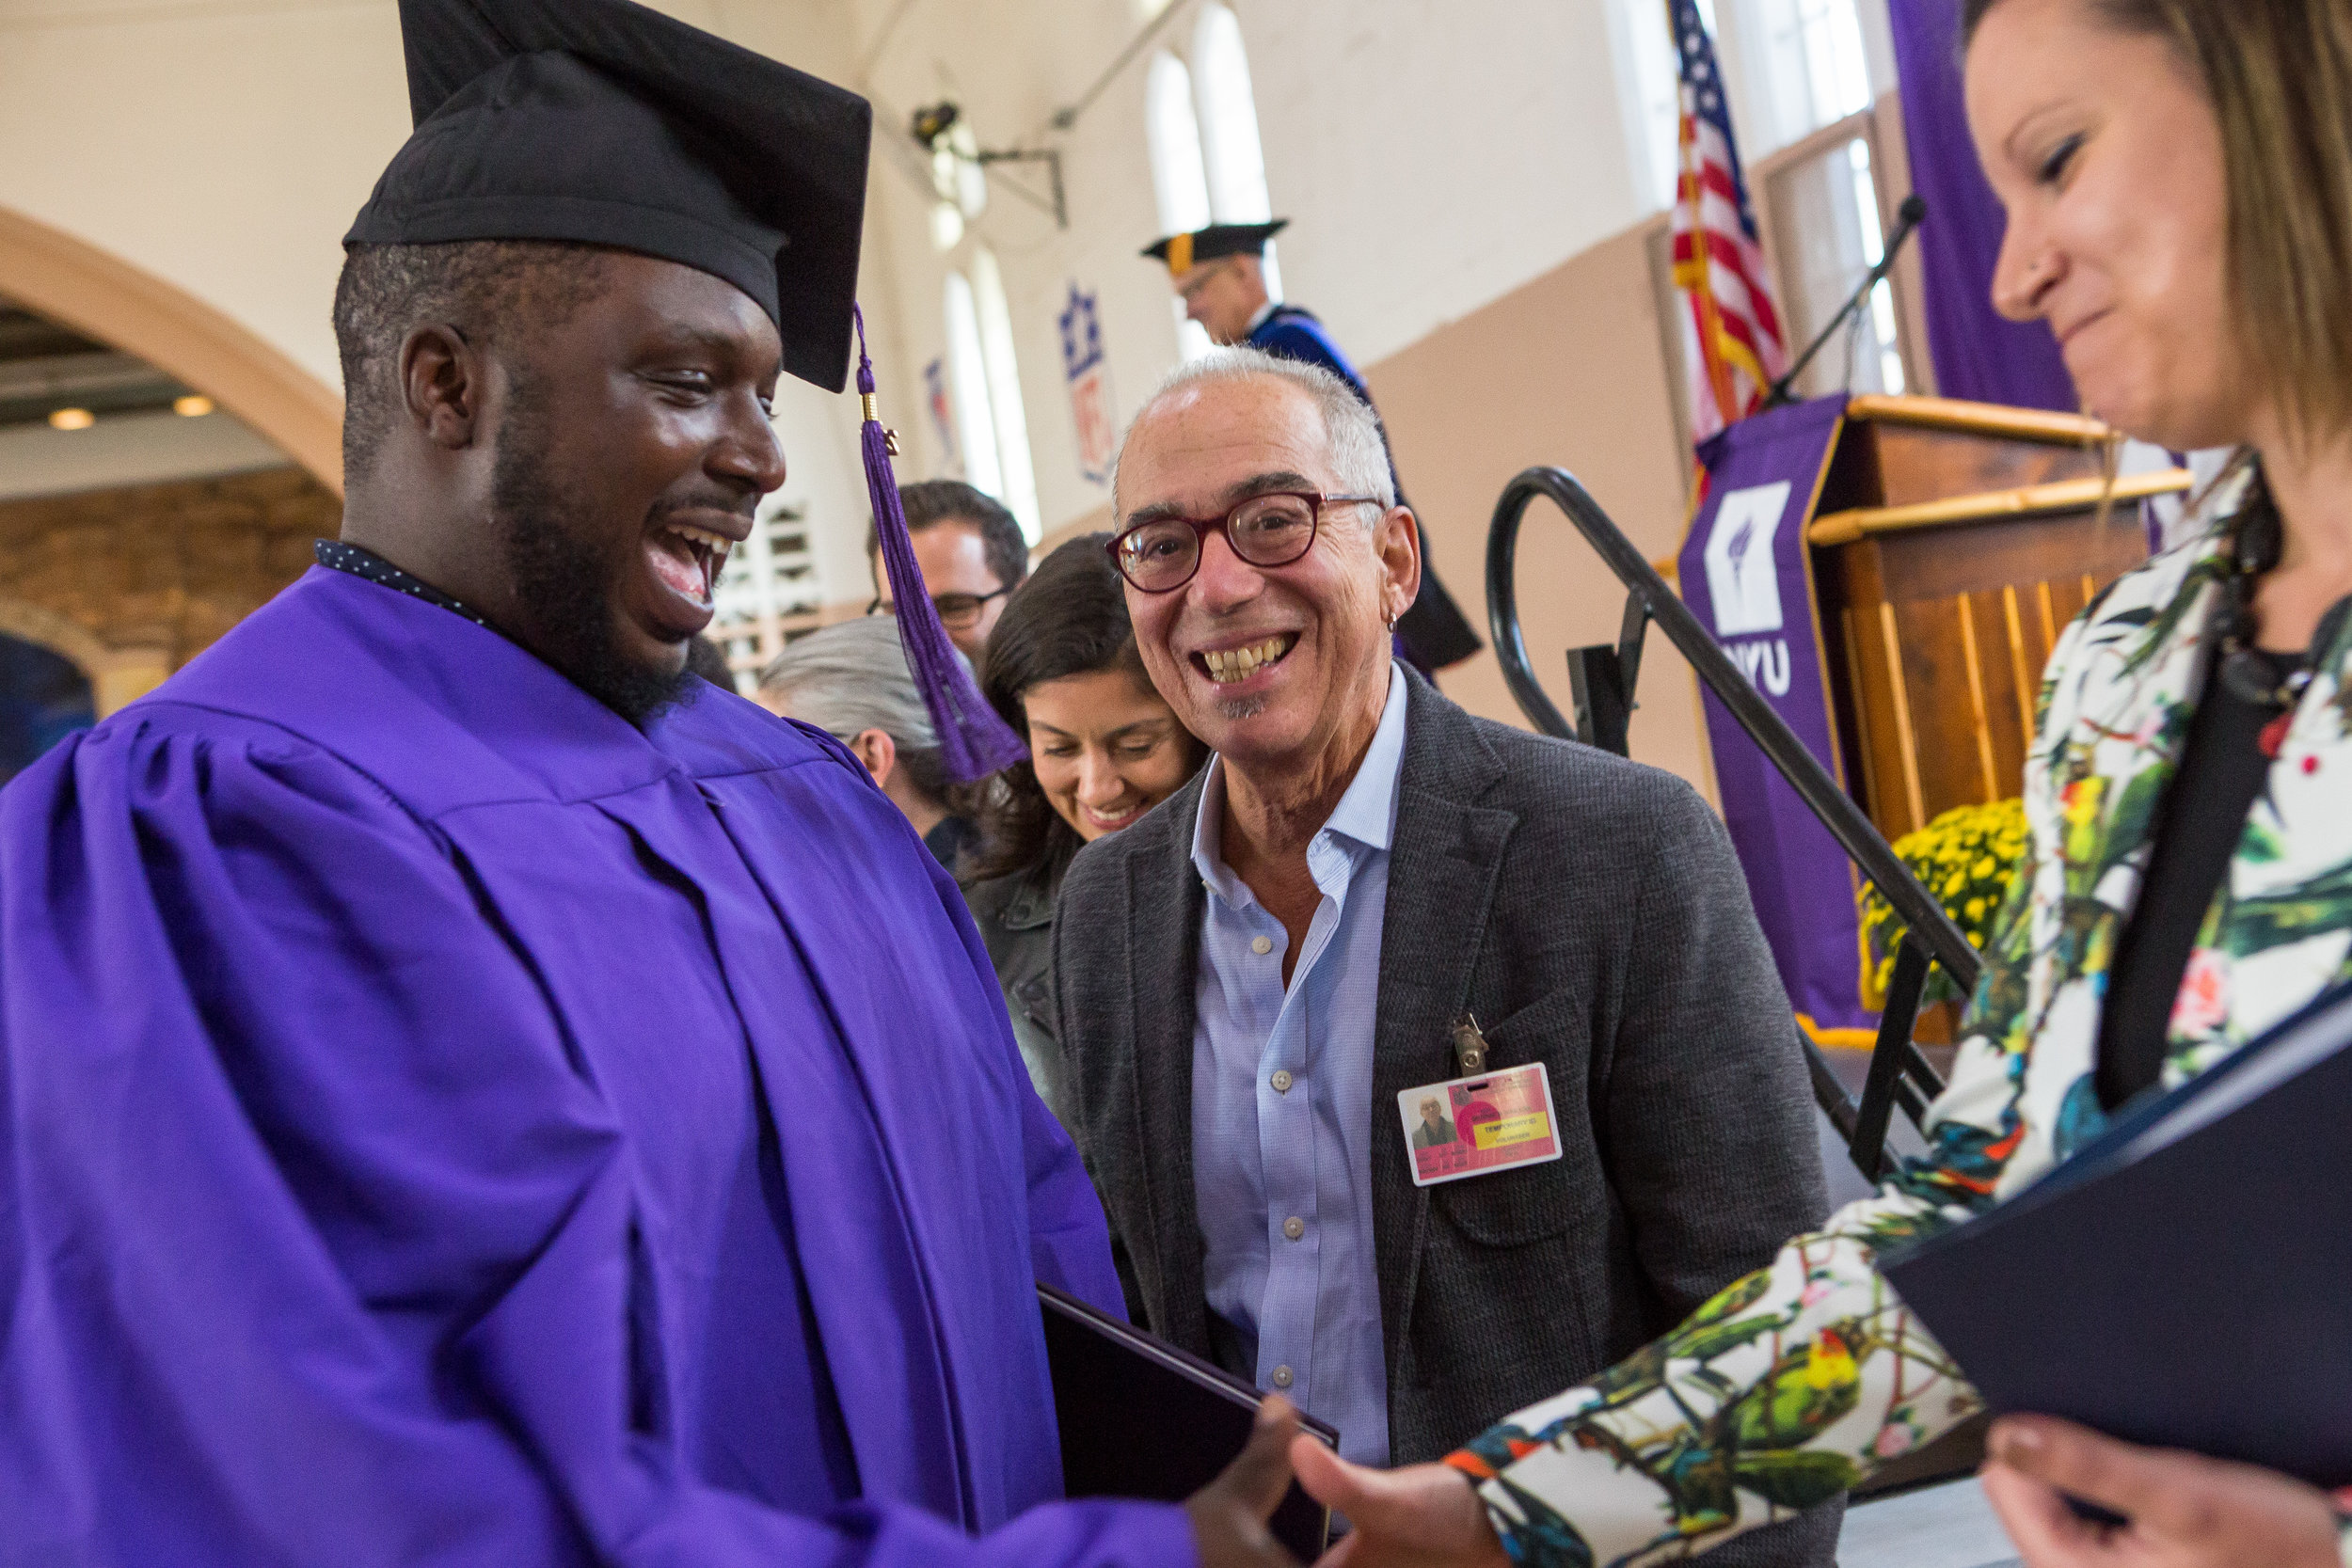 The program supports graduates like Ryan after they've been released by facilitating financial aid, credit-transfers and continuing education.